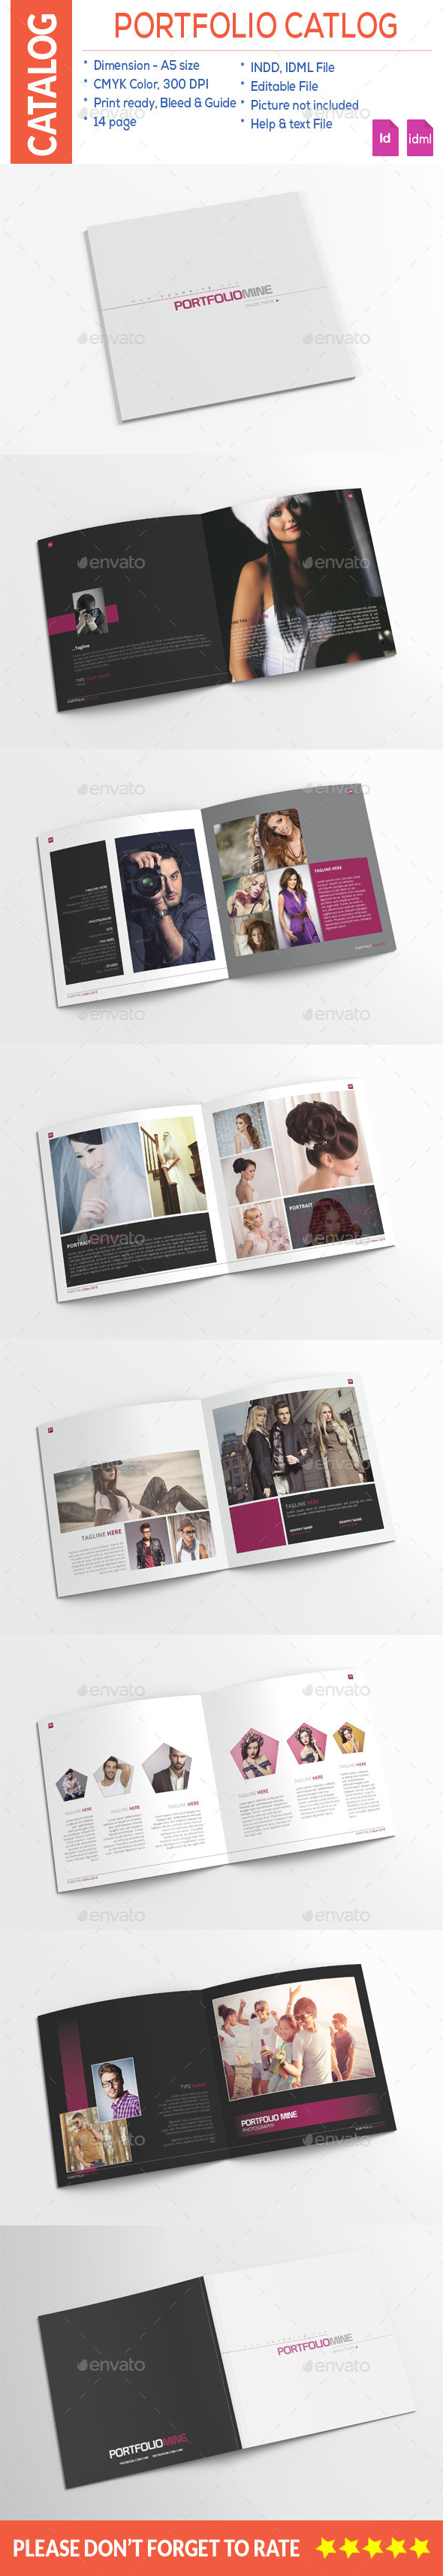 Fashion Portfolio Catalog